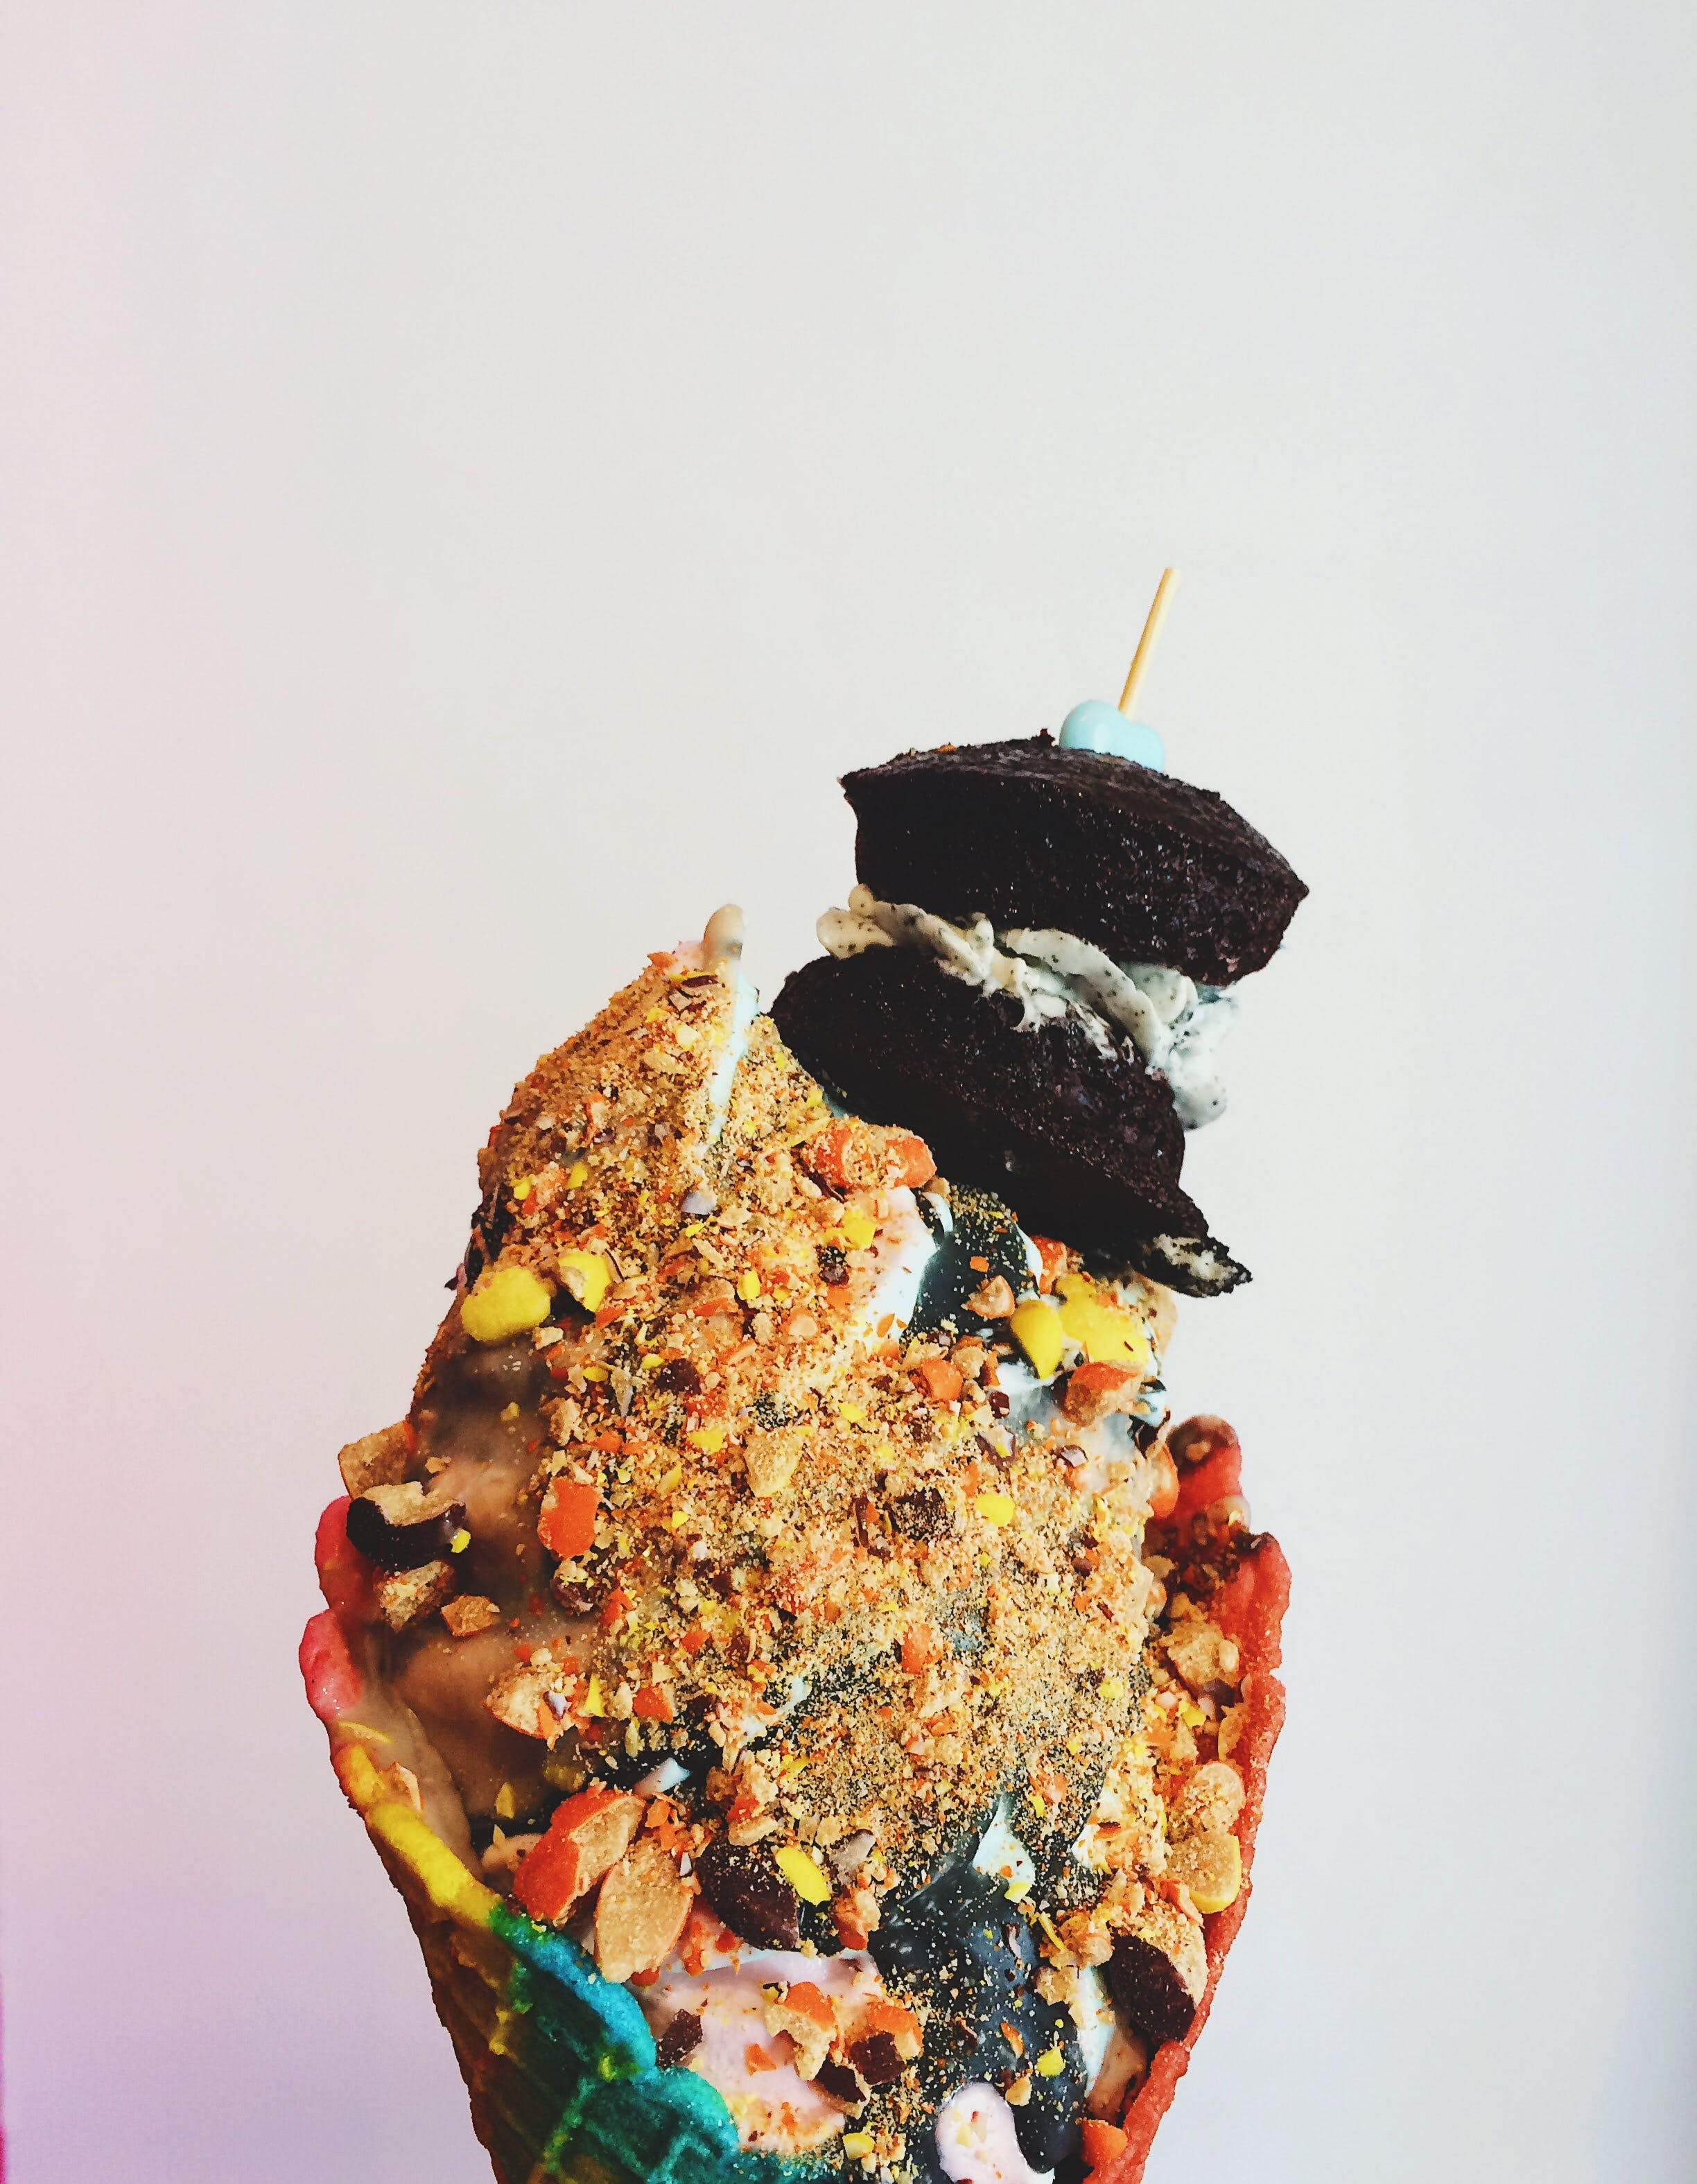 Ice Cream on Cone With Crushed Peanuts and Brownies